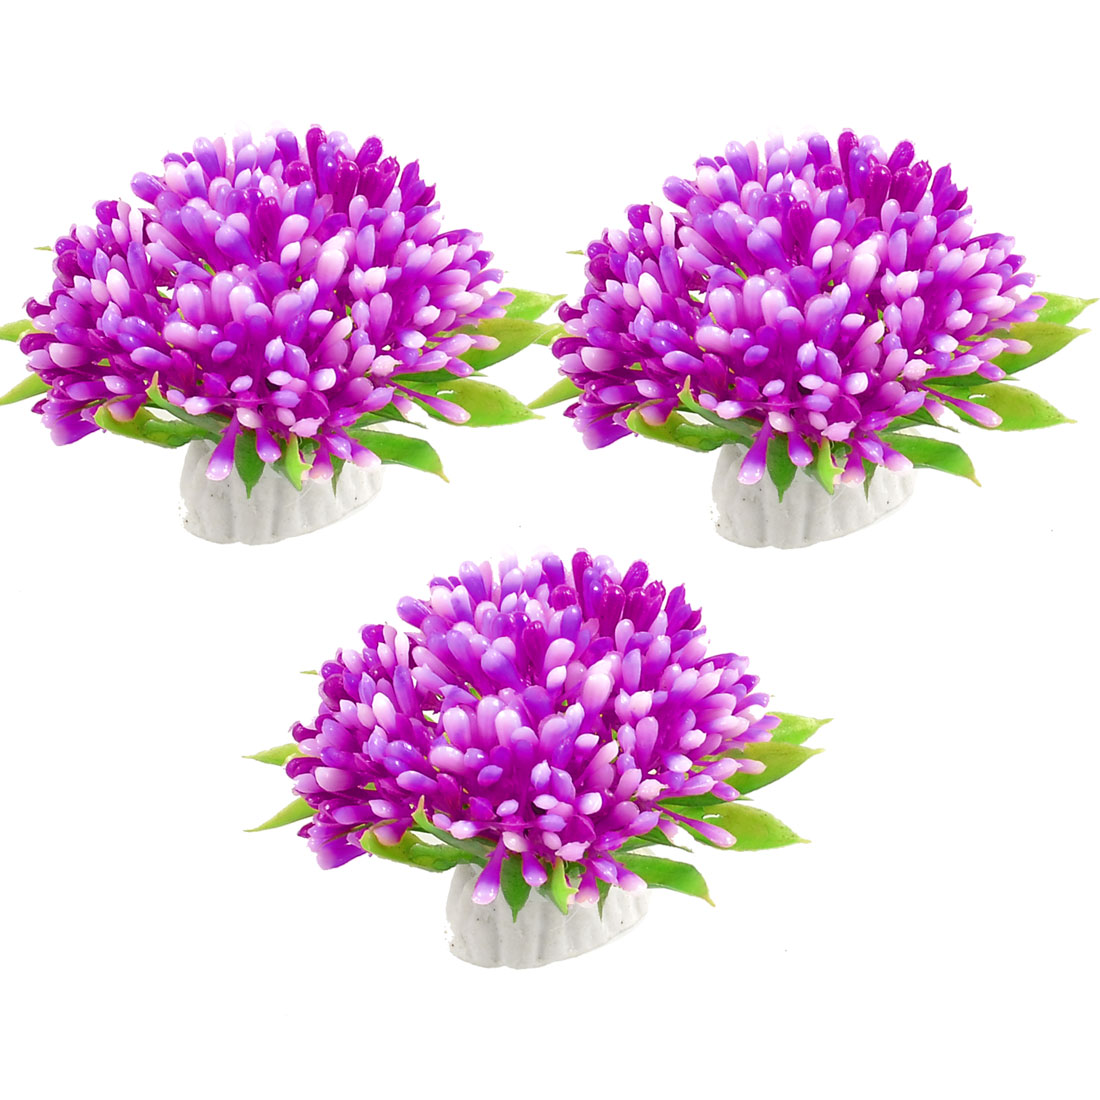 3 Pcs Green Leaves Purple Flower Aquarium Plastic Plants Ornament 1.6""